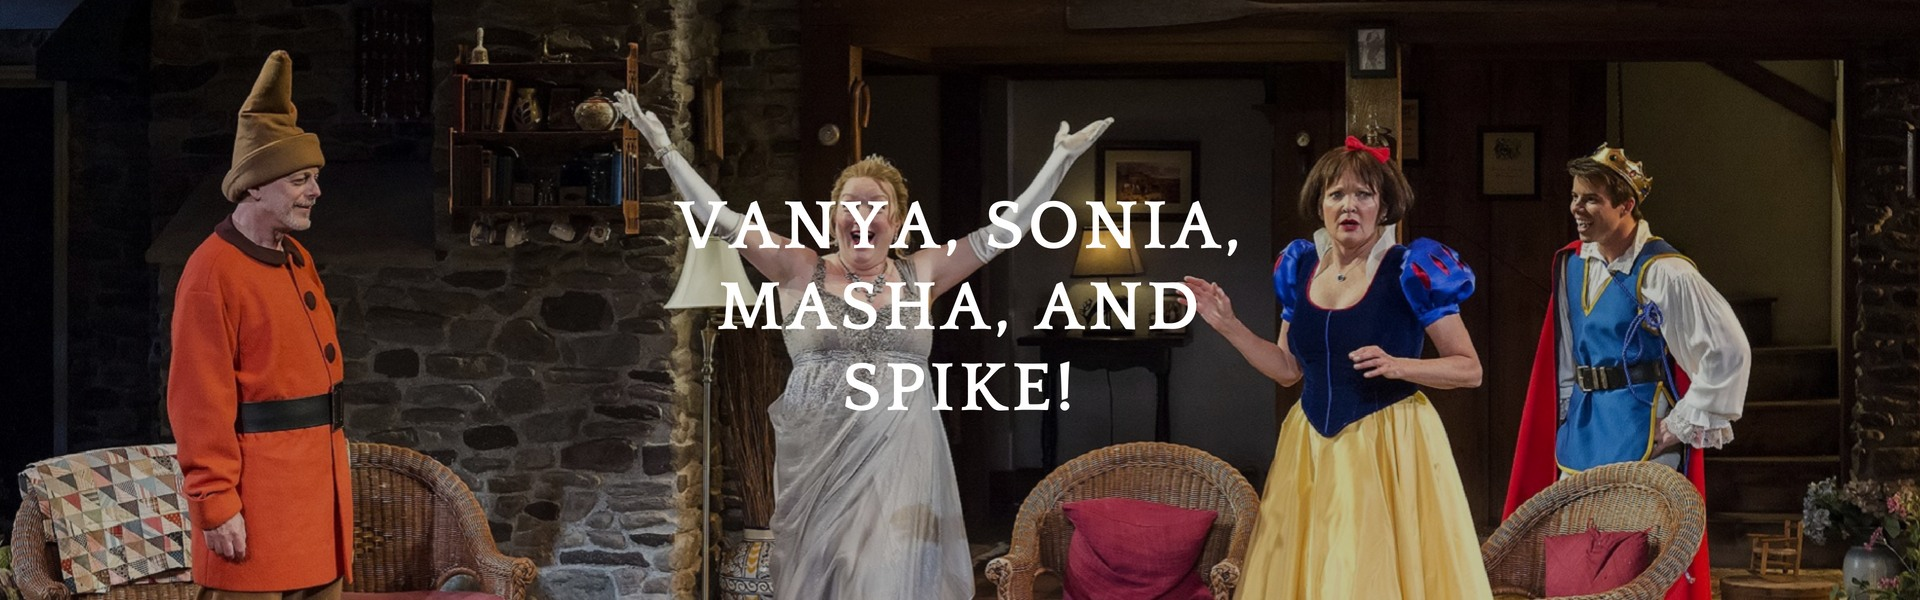 Meet Vanya, Sonia, Masha, and Spike at the Neil Simon Festival